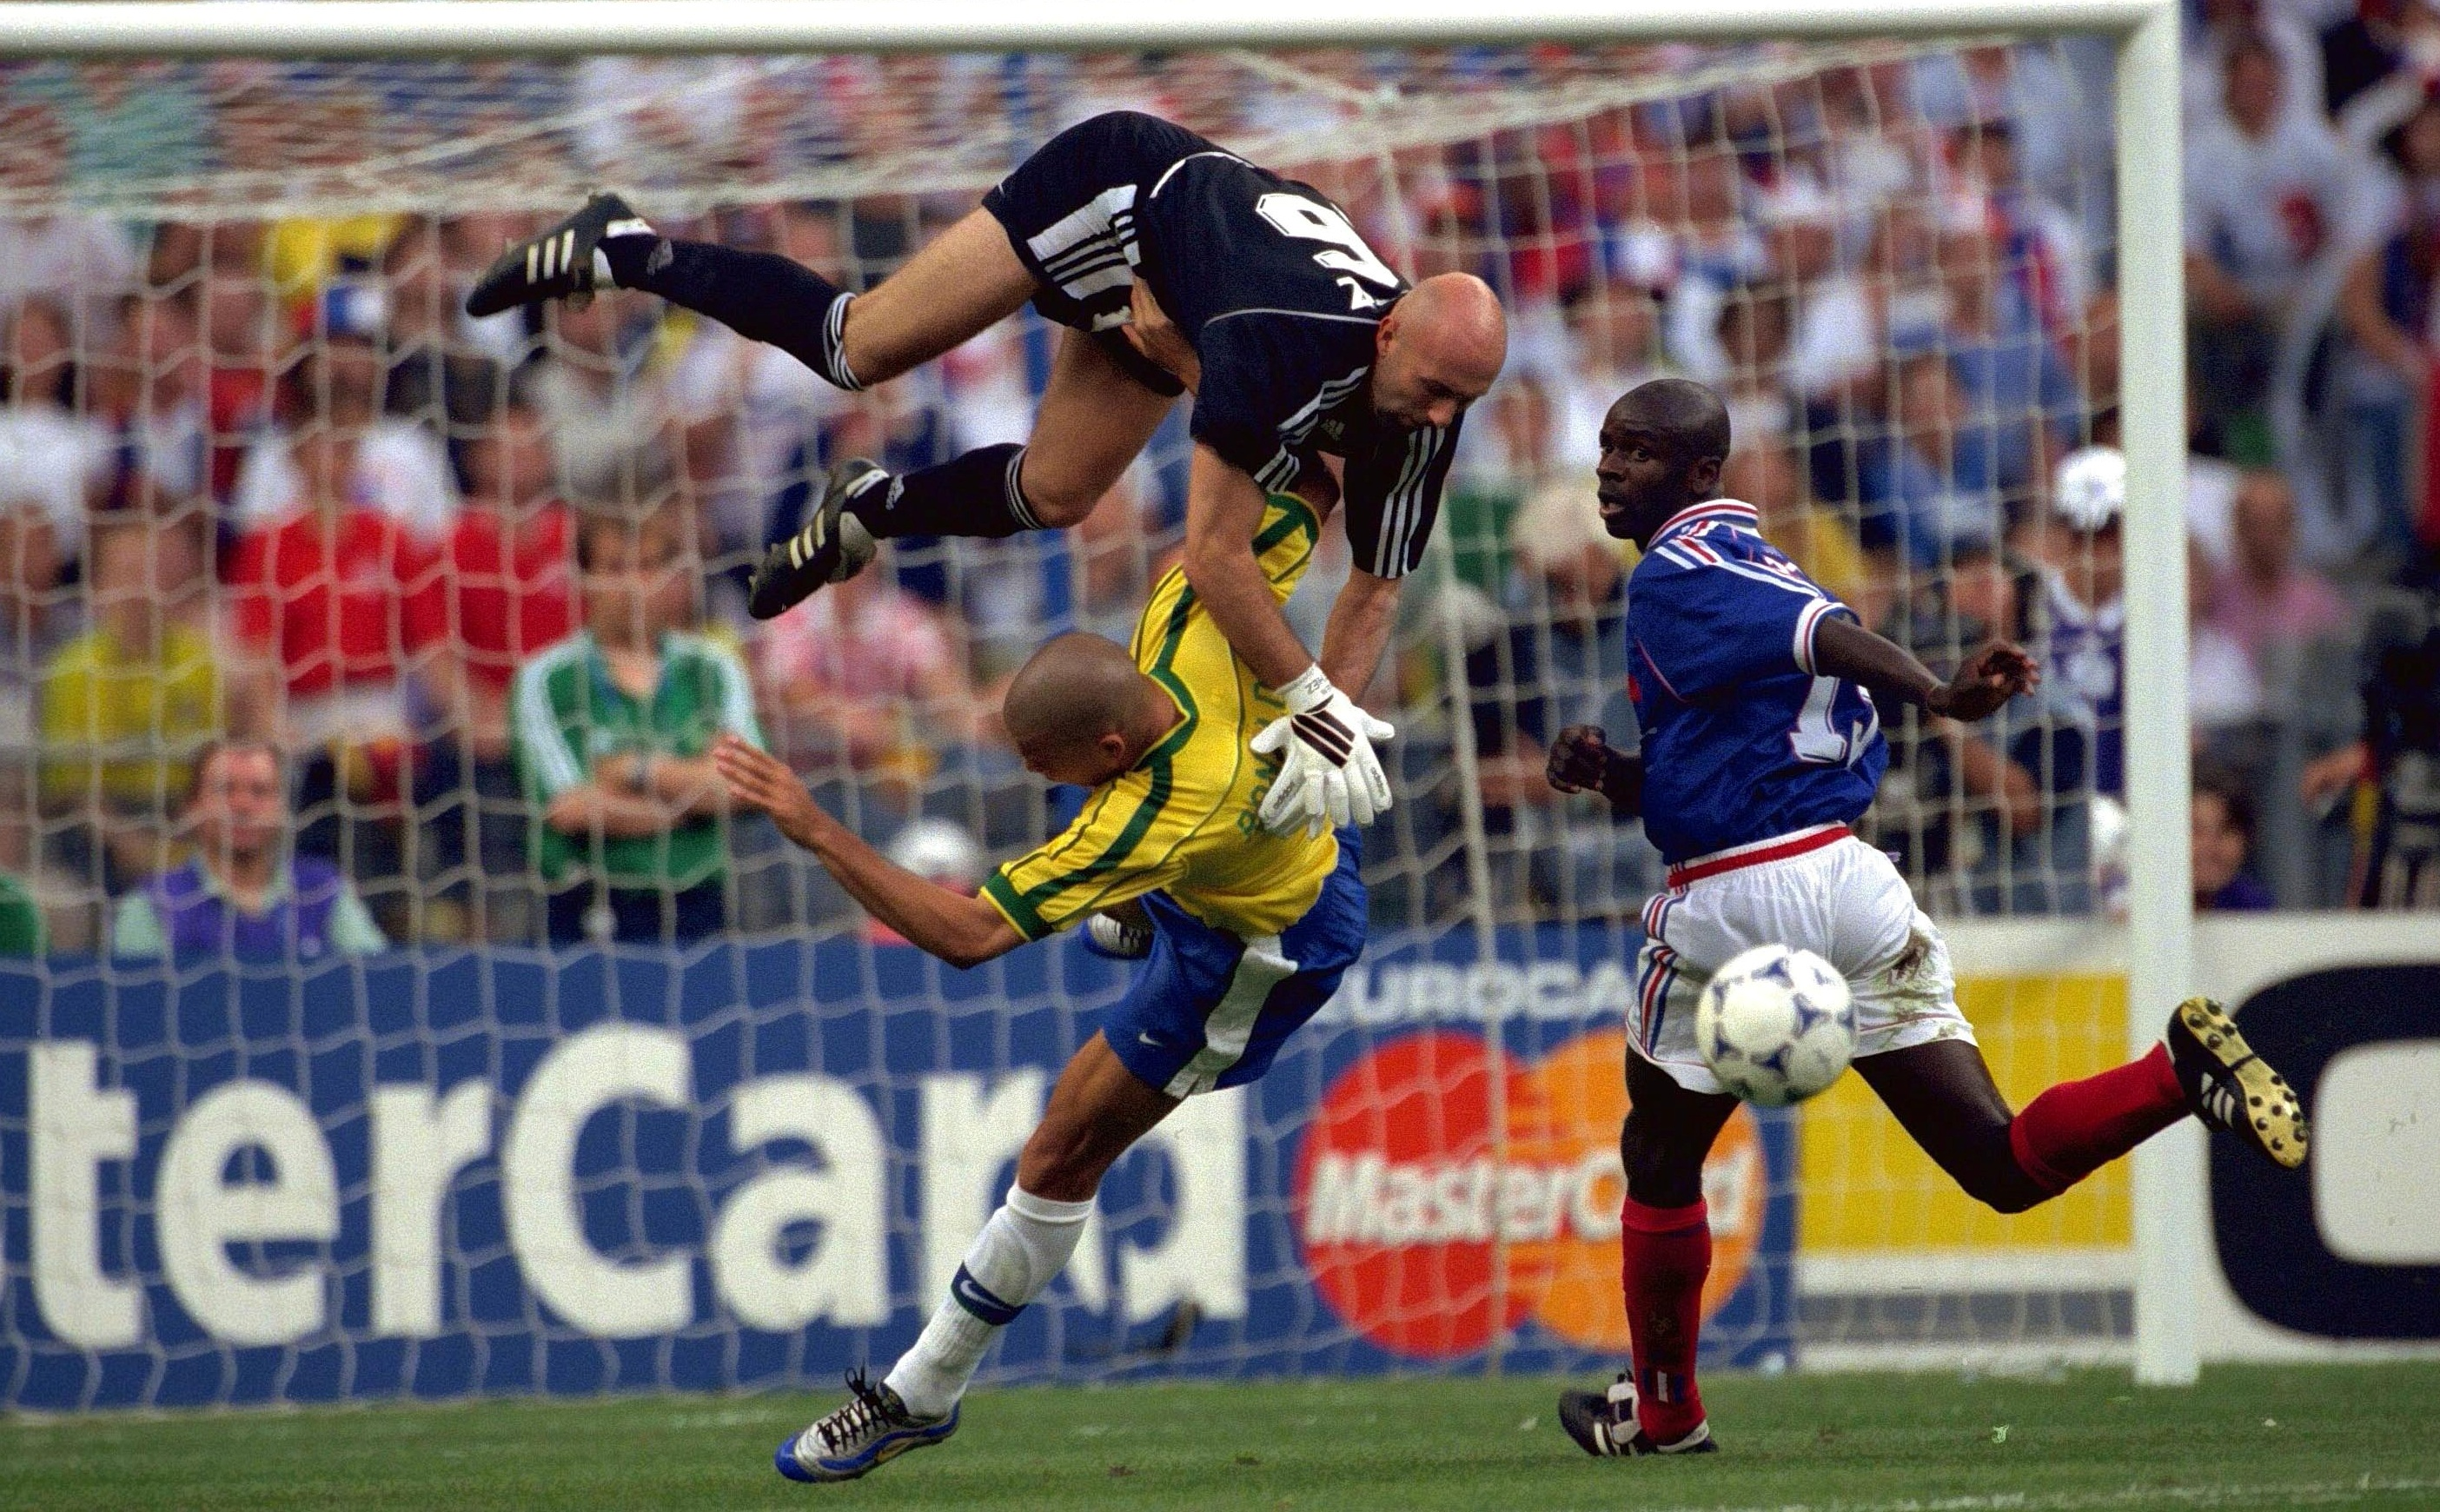 95c1b36e0 Ronaldo (centre) was injured after a clash with France goalkeeper Fabian  Barthez